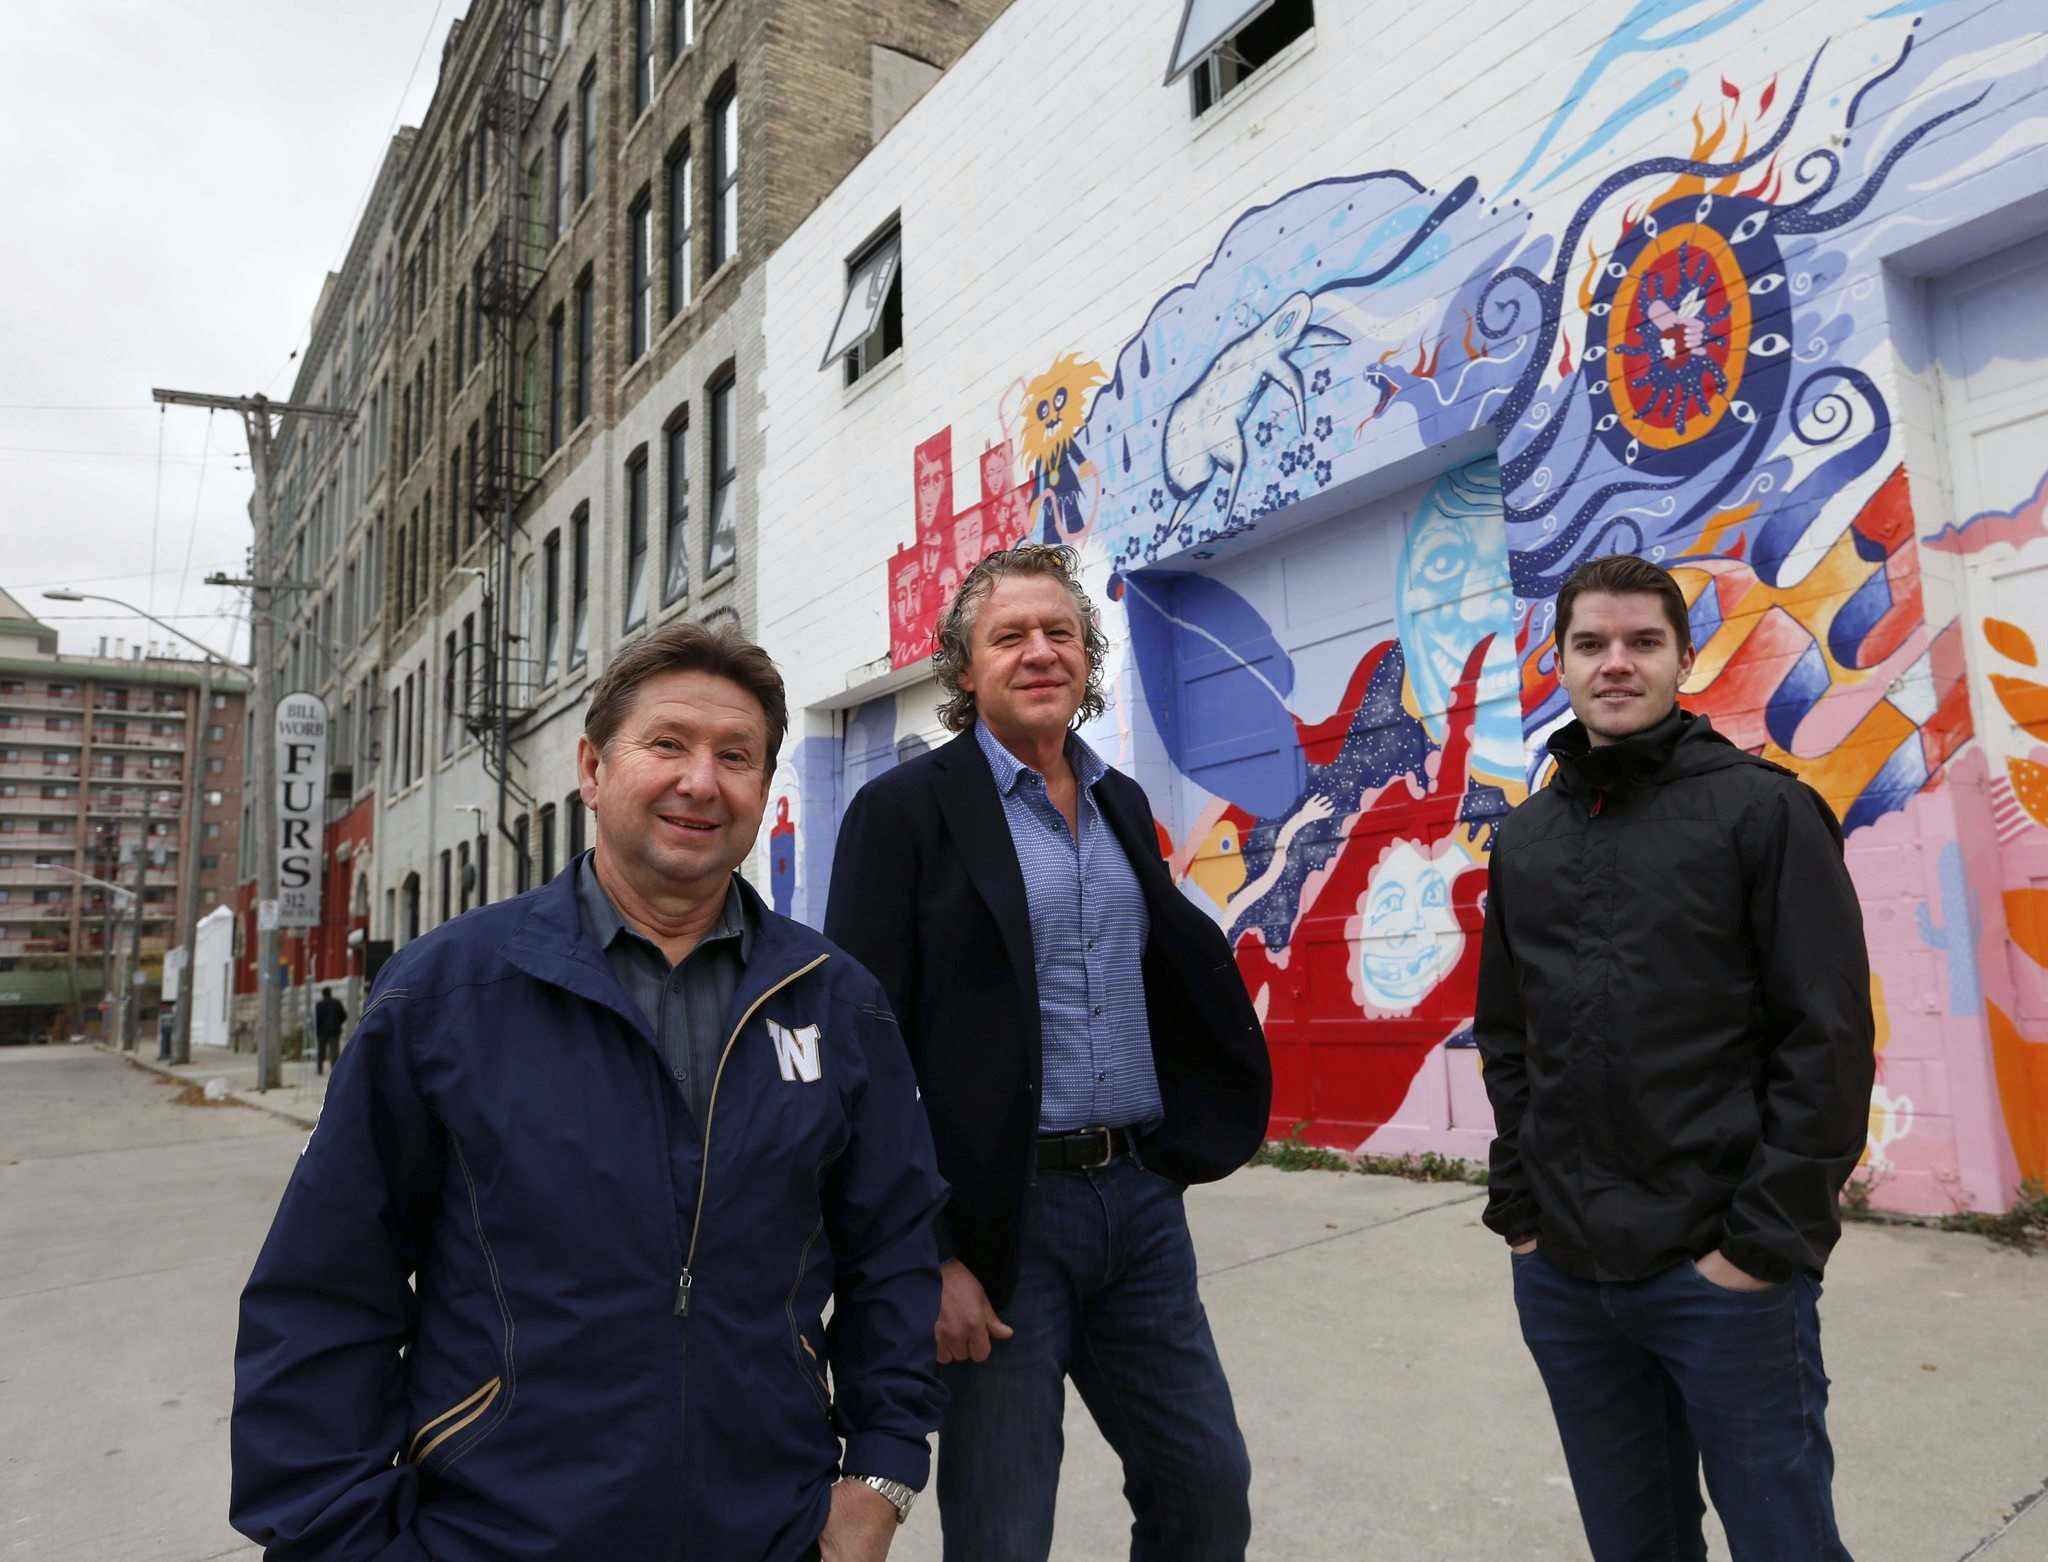 WAYNE GLOWACKI / WINNIPEG FREE PRESS</p><p>Developers Rick (from left) and Mark Hofer and Bryce Alston are investing $12 million in the redevelopment and construction of numerous properties on Ross Avenue, west of Princess Street.</p>